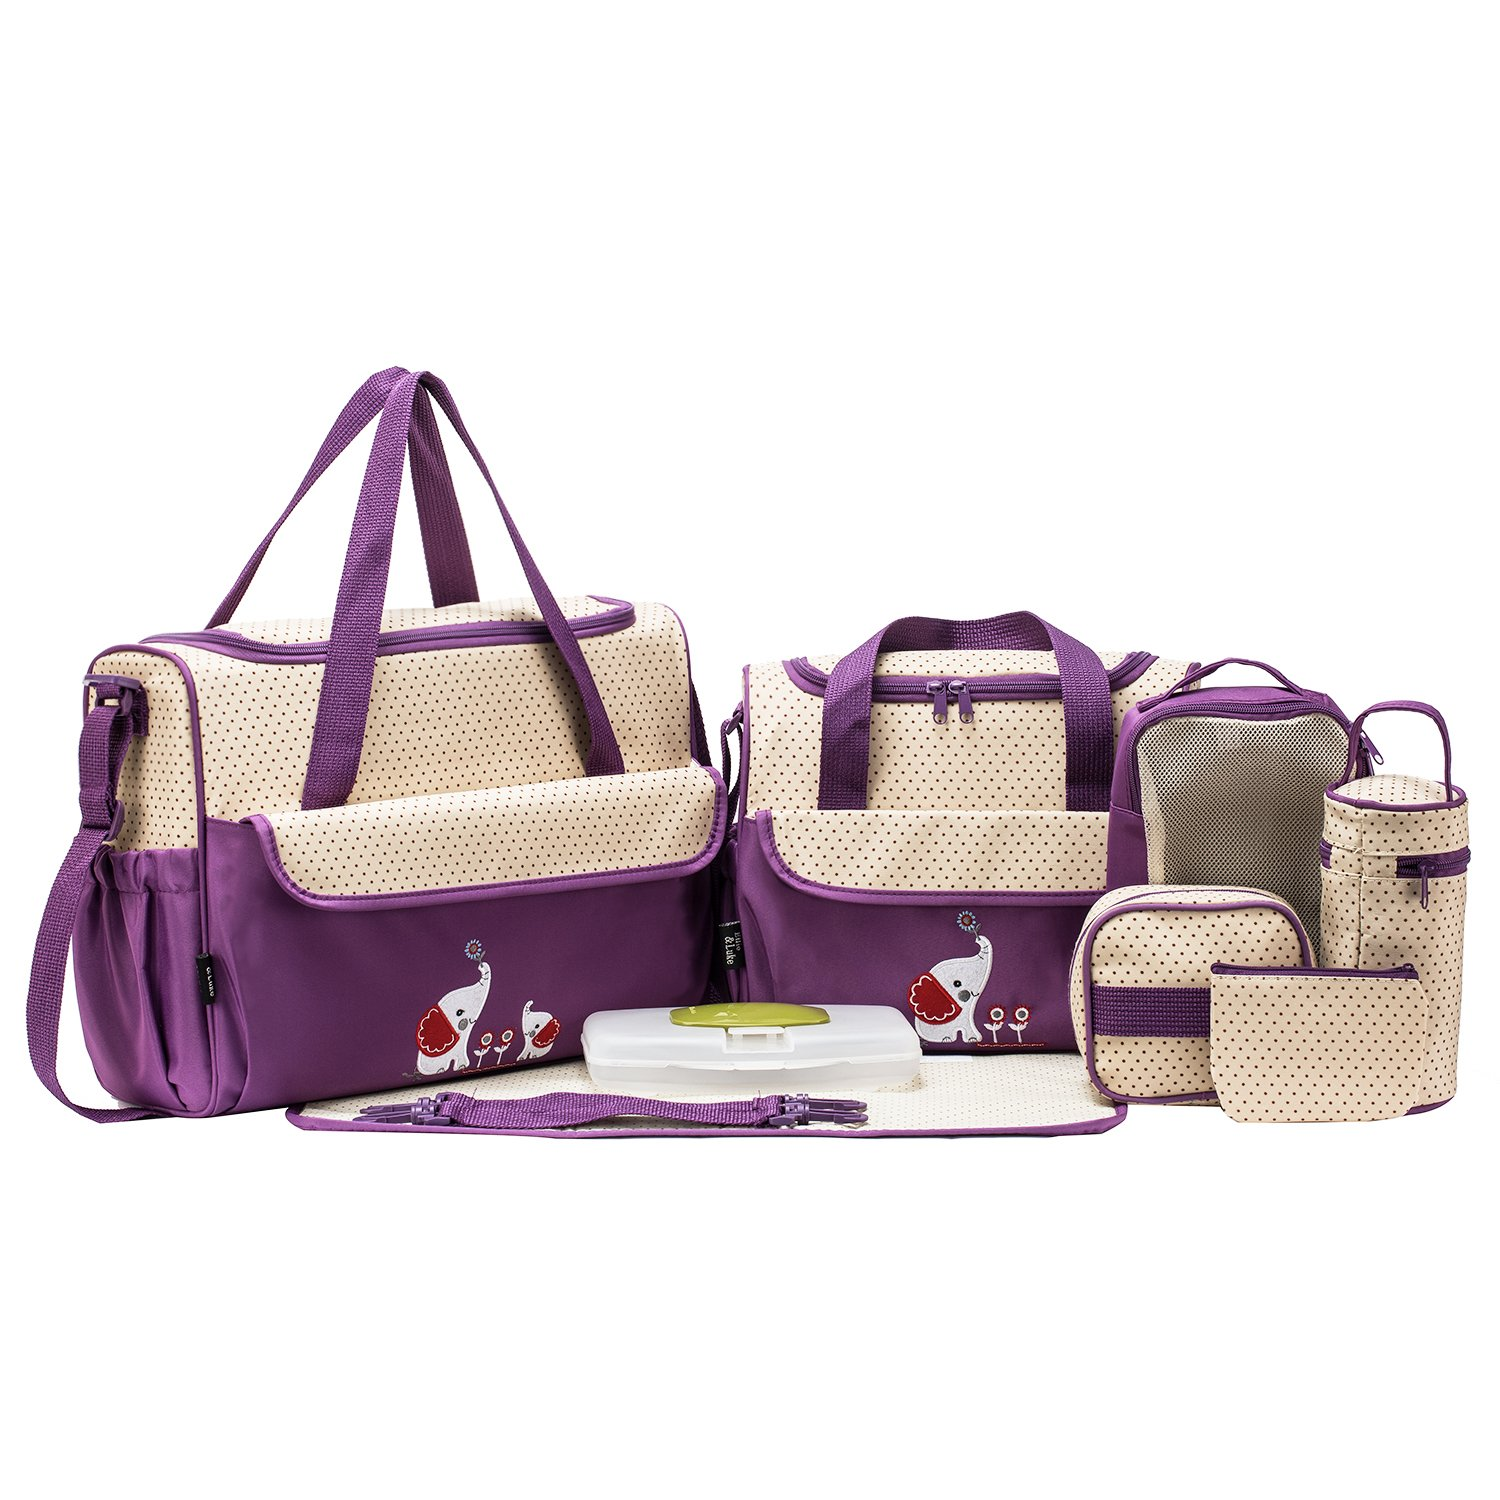 SOHO Collections Diaper Bag Set (Lavender with Elephant), 10 Pieces by SoHo Designs